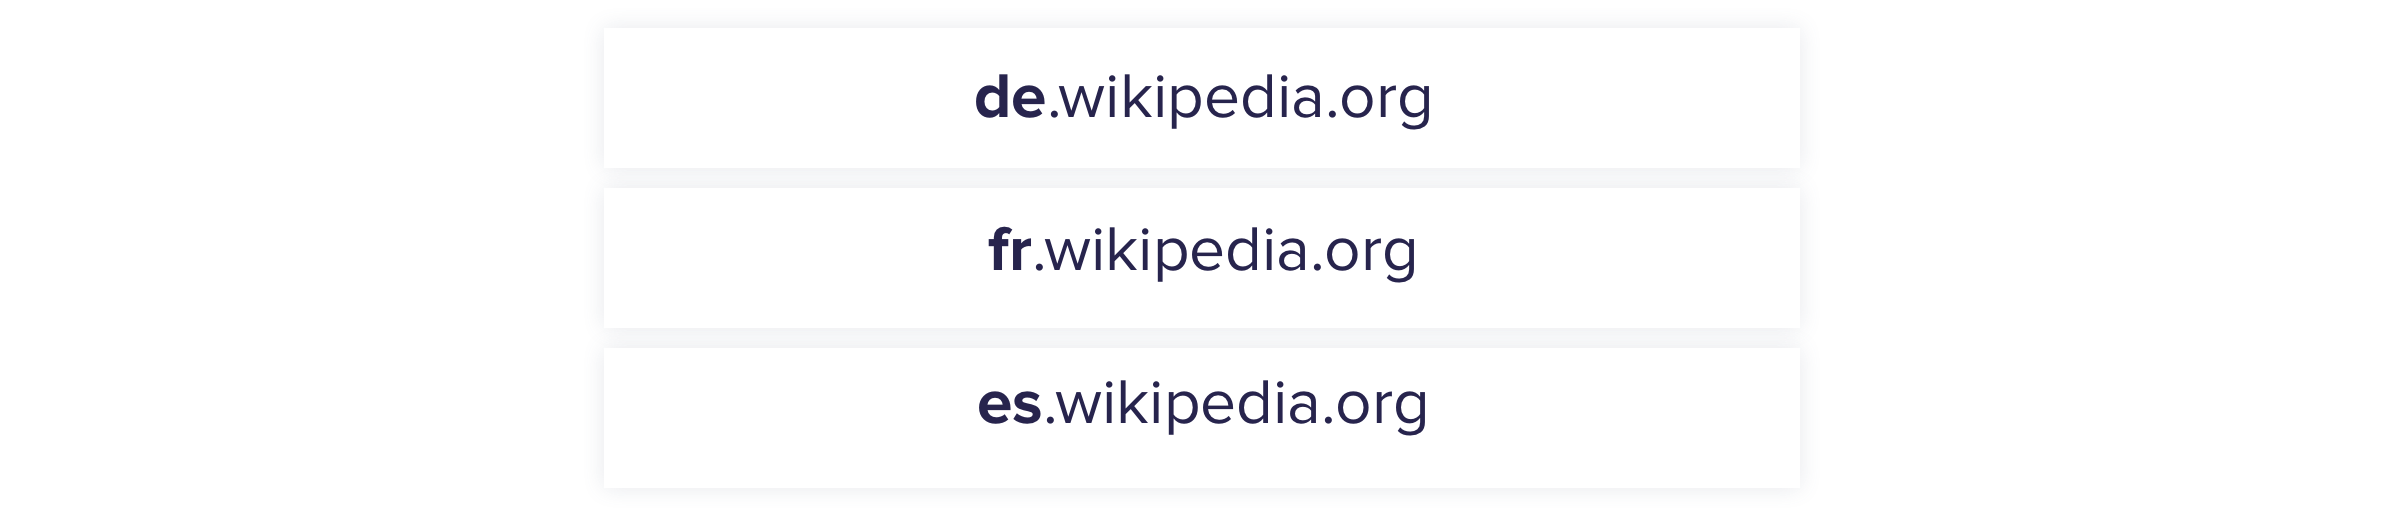 Wikipedia's subdomains for regions